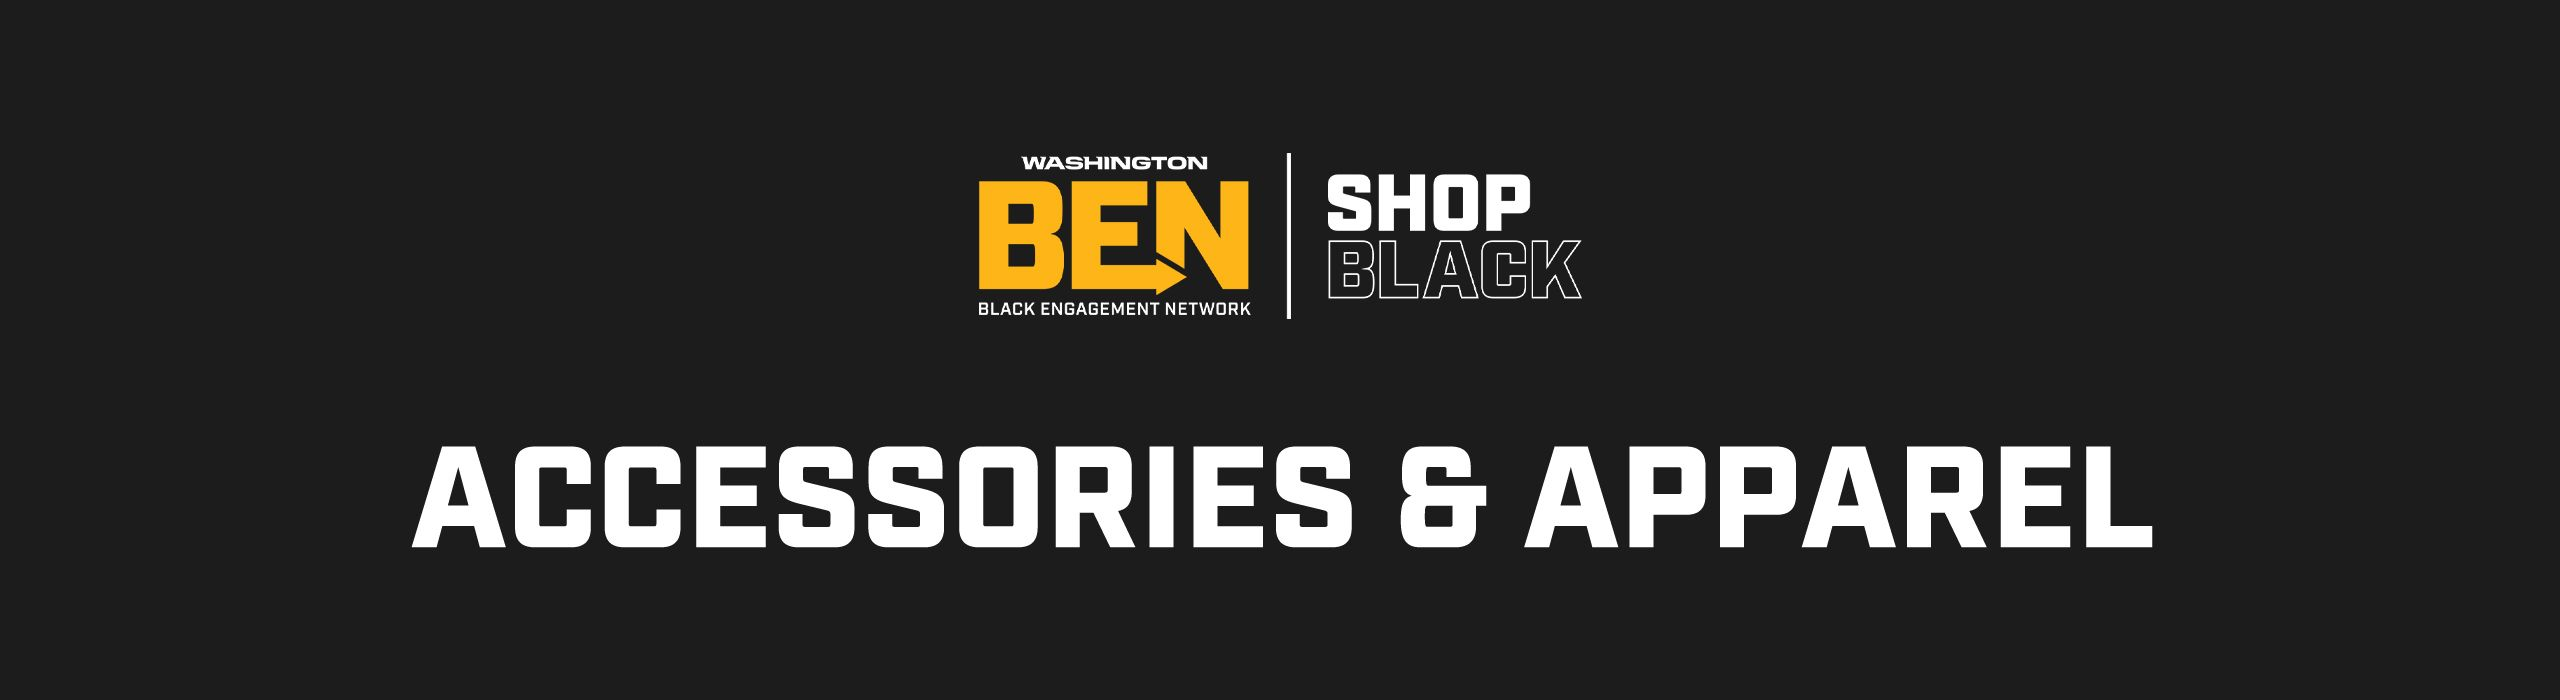 2020BEN_ShopBlack_CategoryPageHeader_Accessories+Apparel